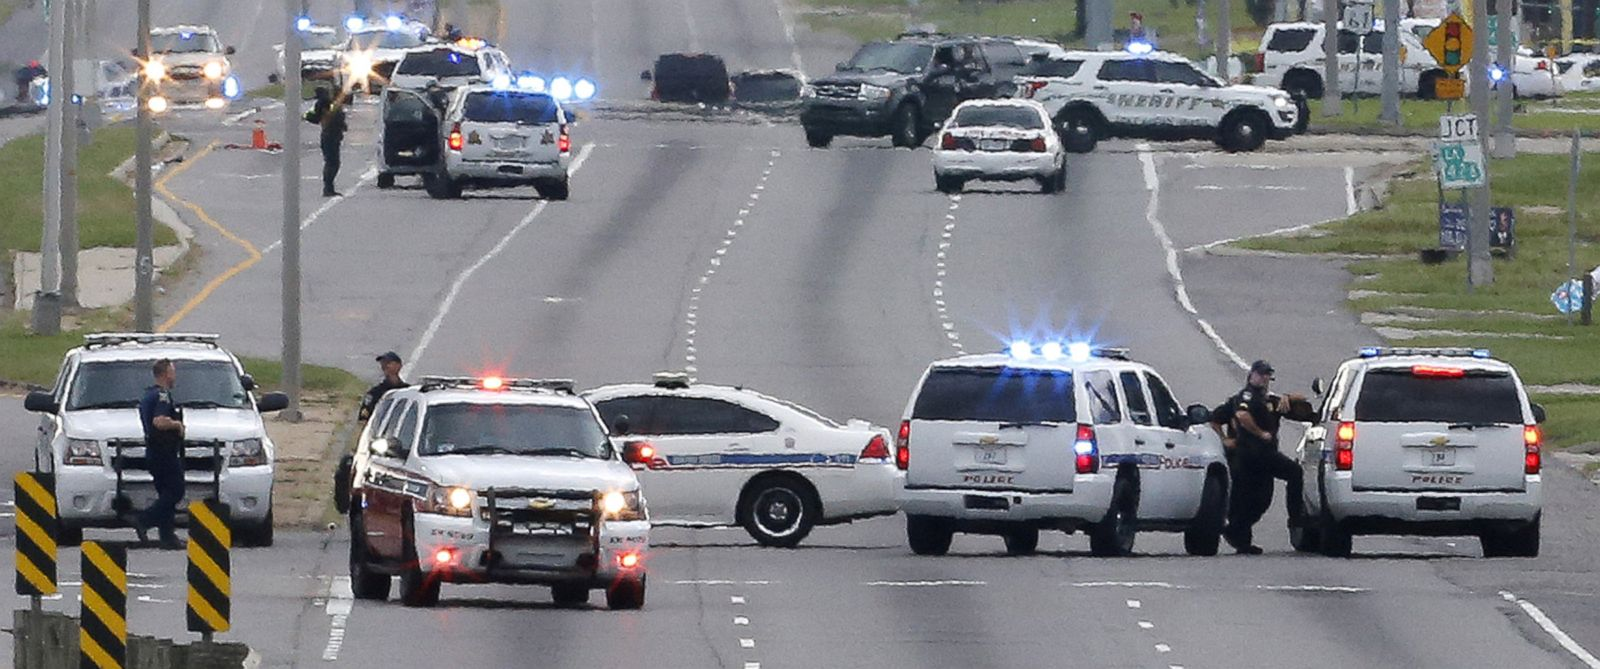 PHOTO: Law enforcement vehicles block access to Airline Highway near the scene of a fatal shooting of police officers in Baton Rouge, Louisiana, July 17, 2016.